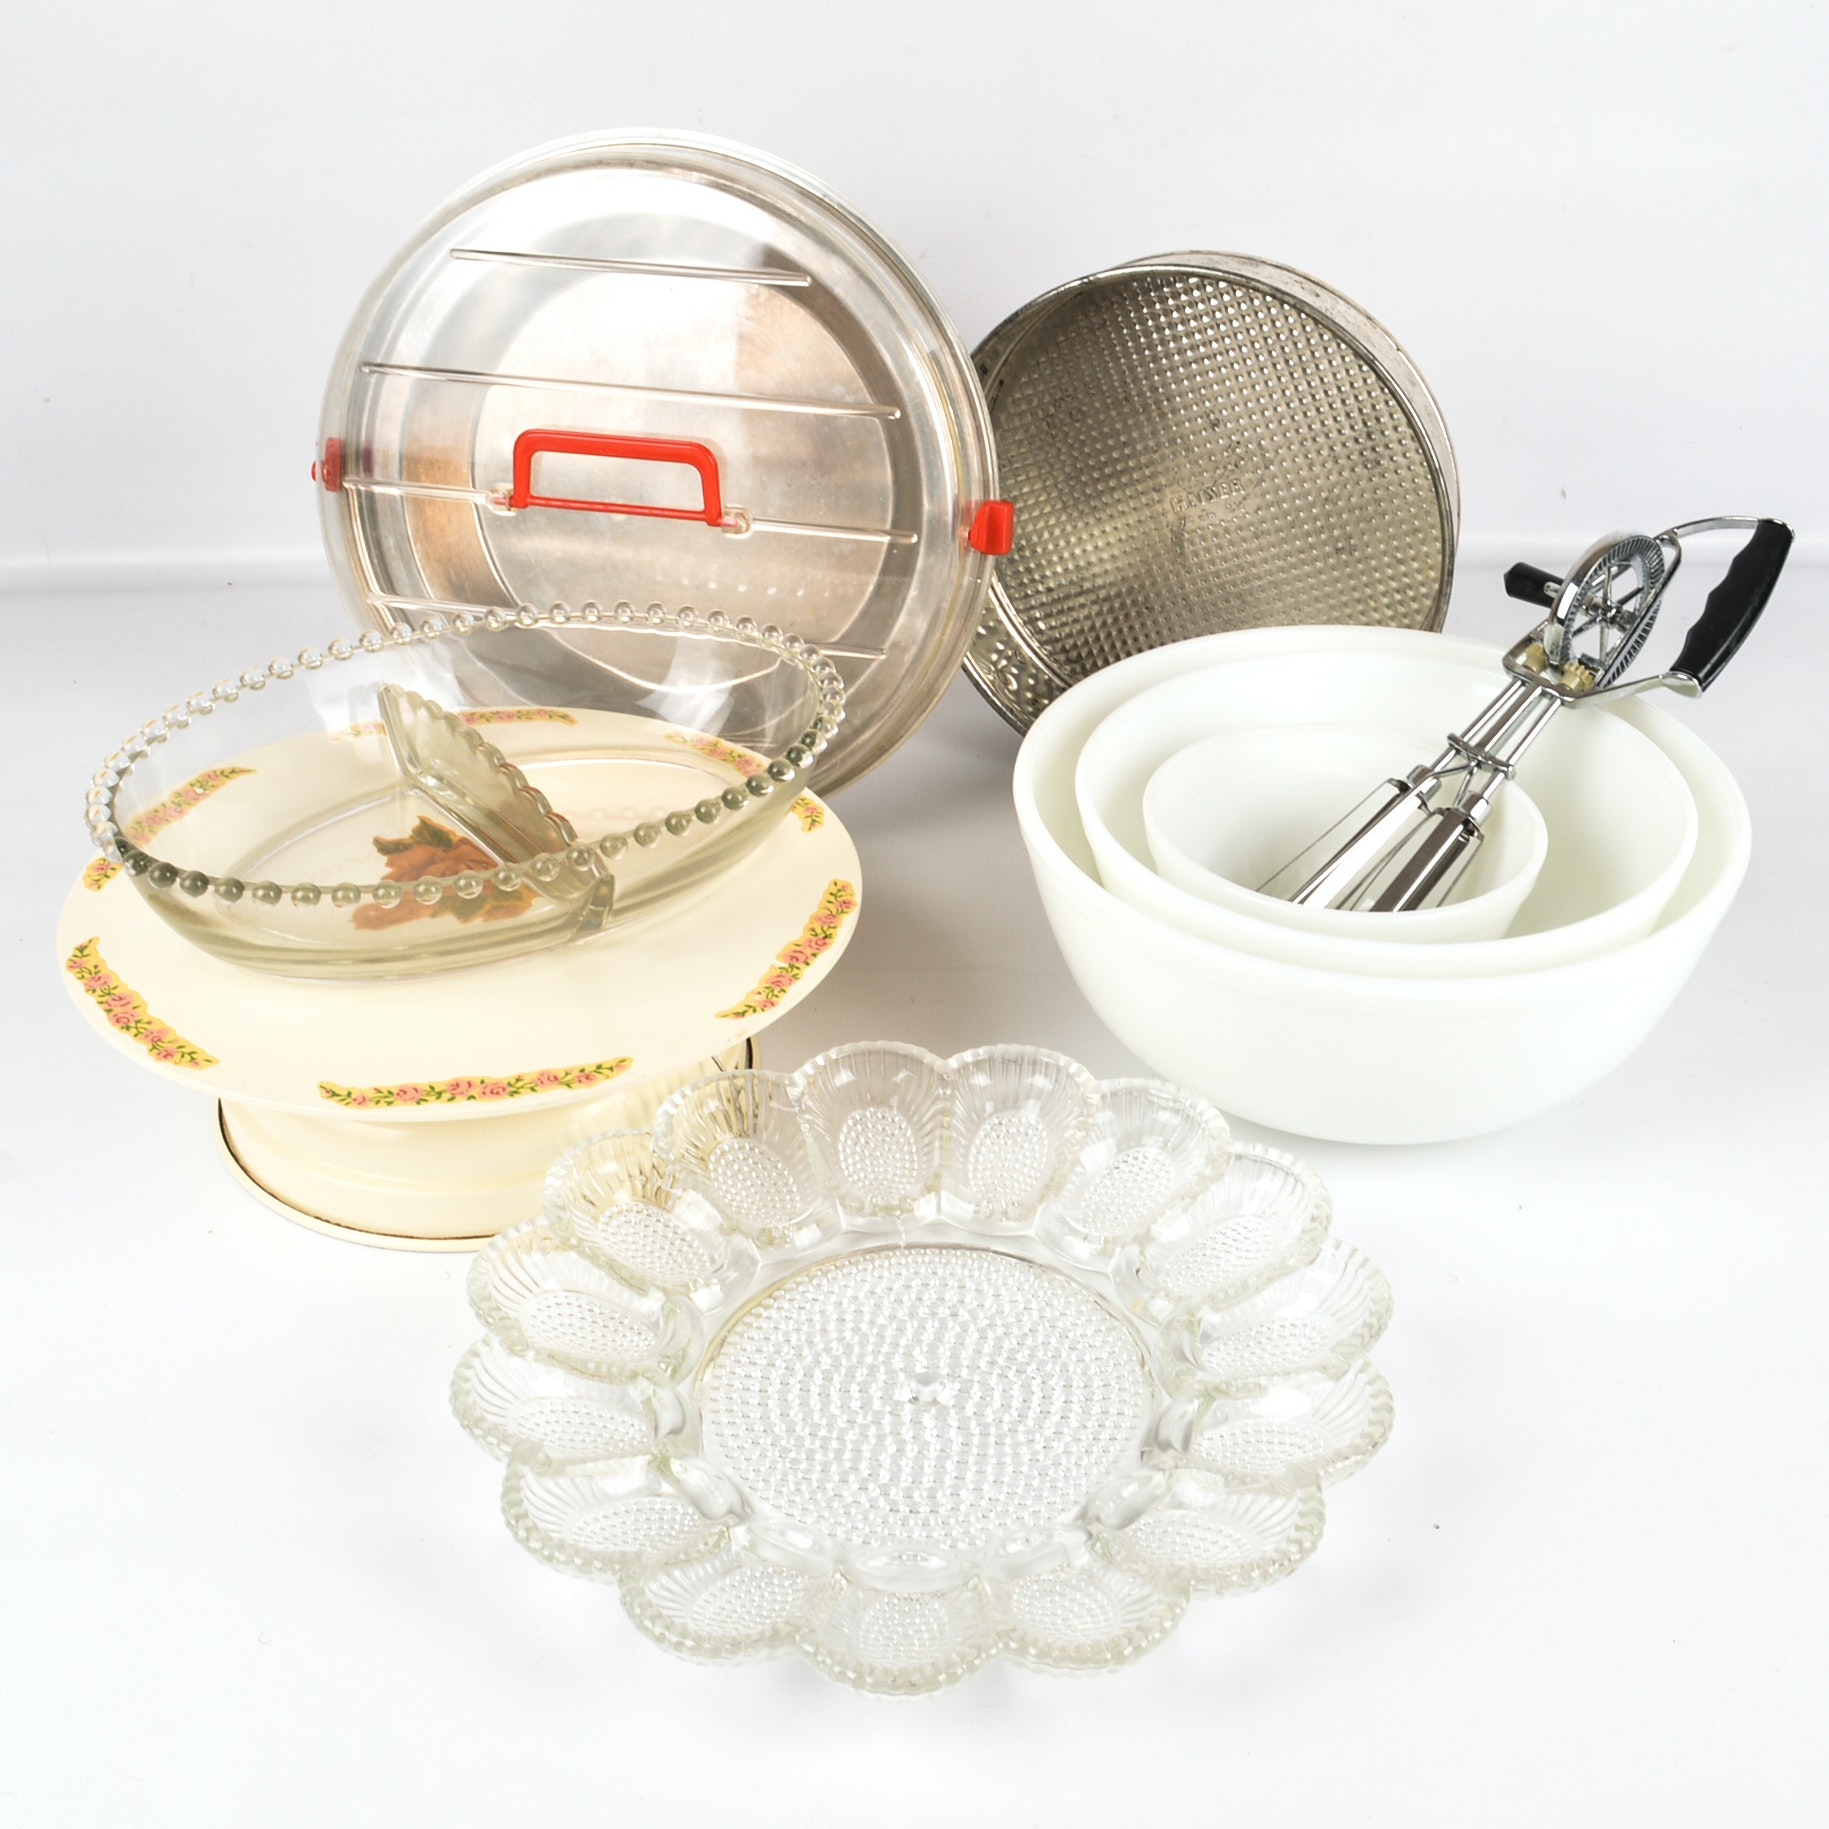 Vintage Kitchenalia Including a Musical Cake Stand and More